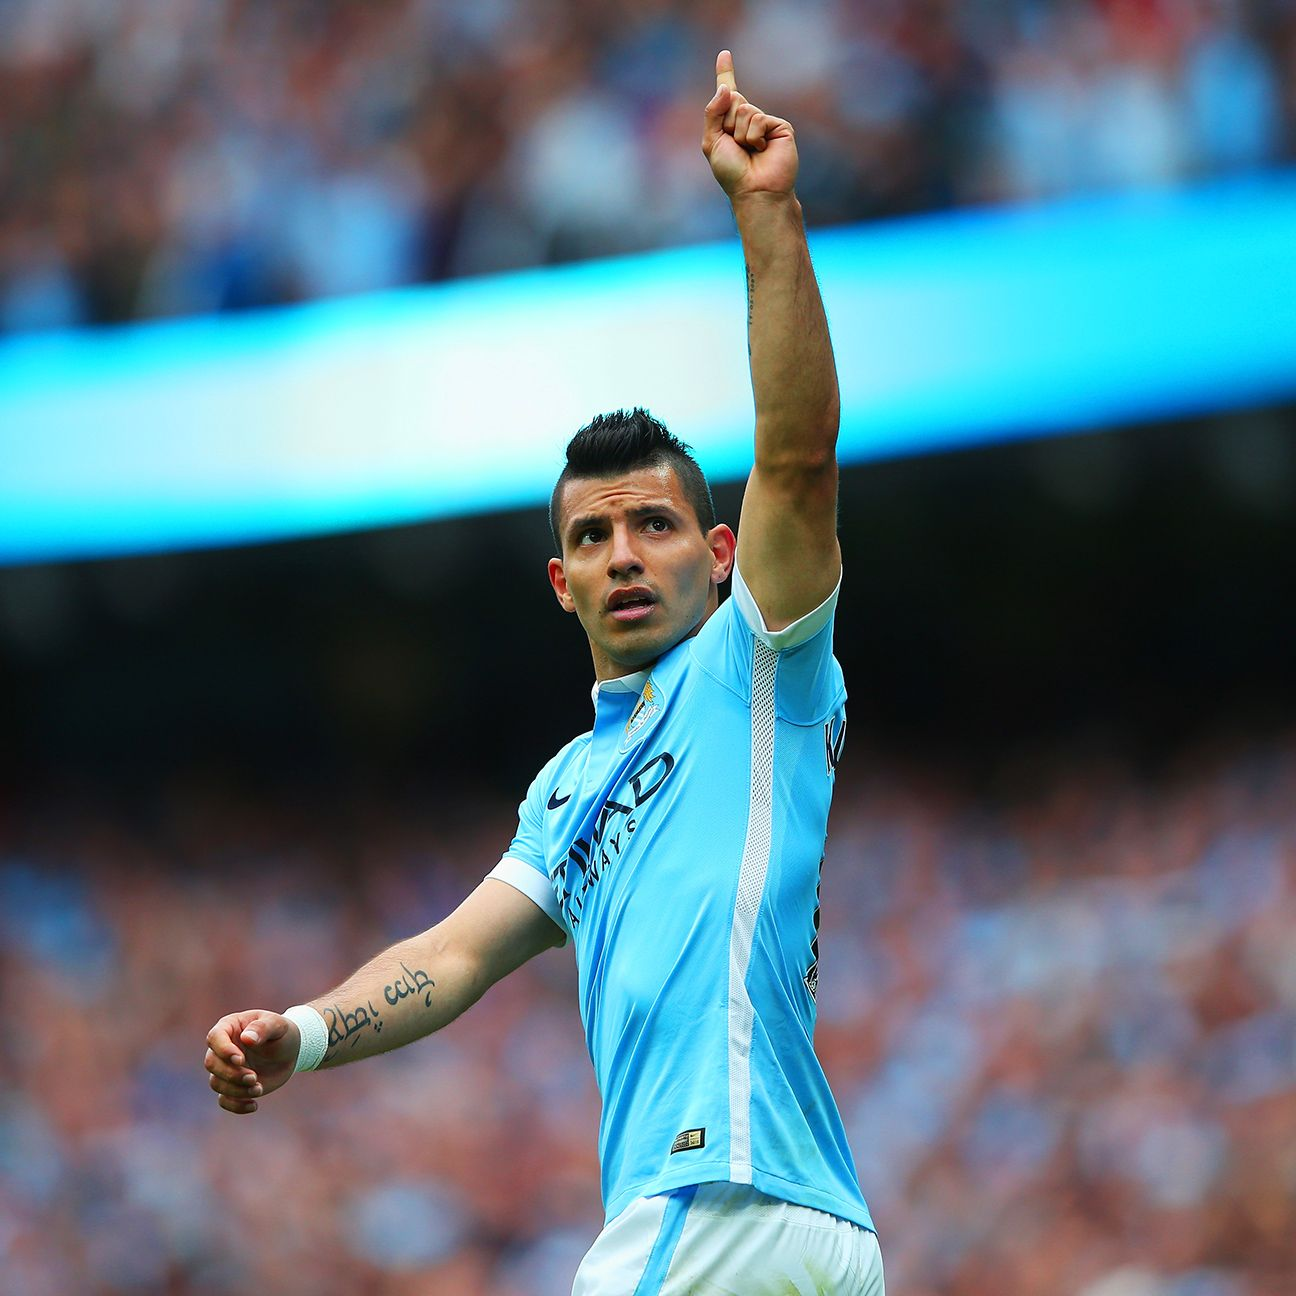 Manchester City will need the best of Sergio Aguero against Juventus, Sevilla and Borussia Monchengladbach.